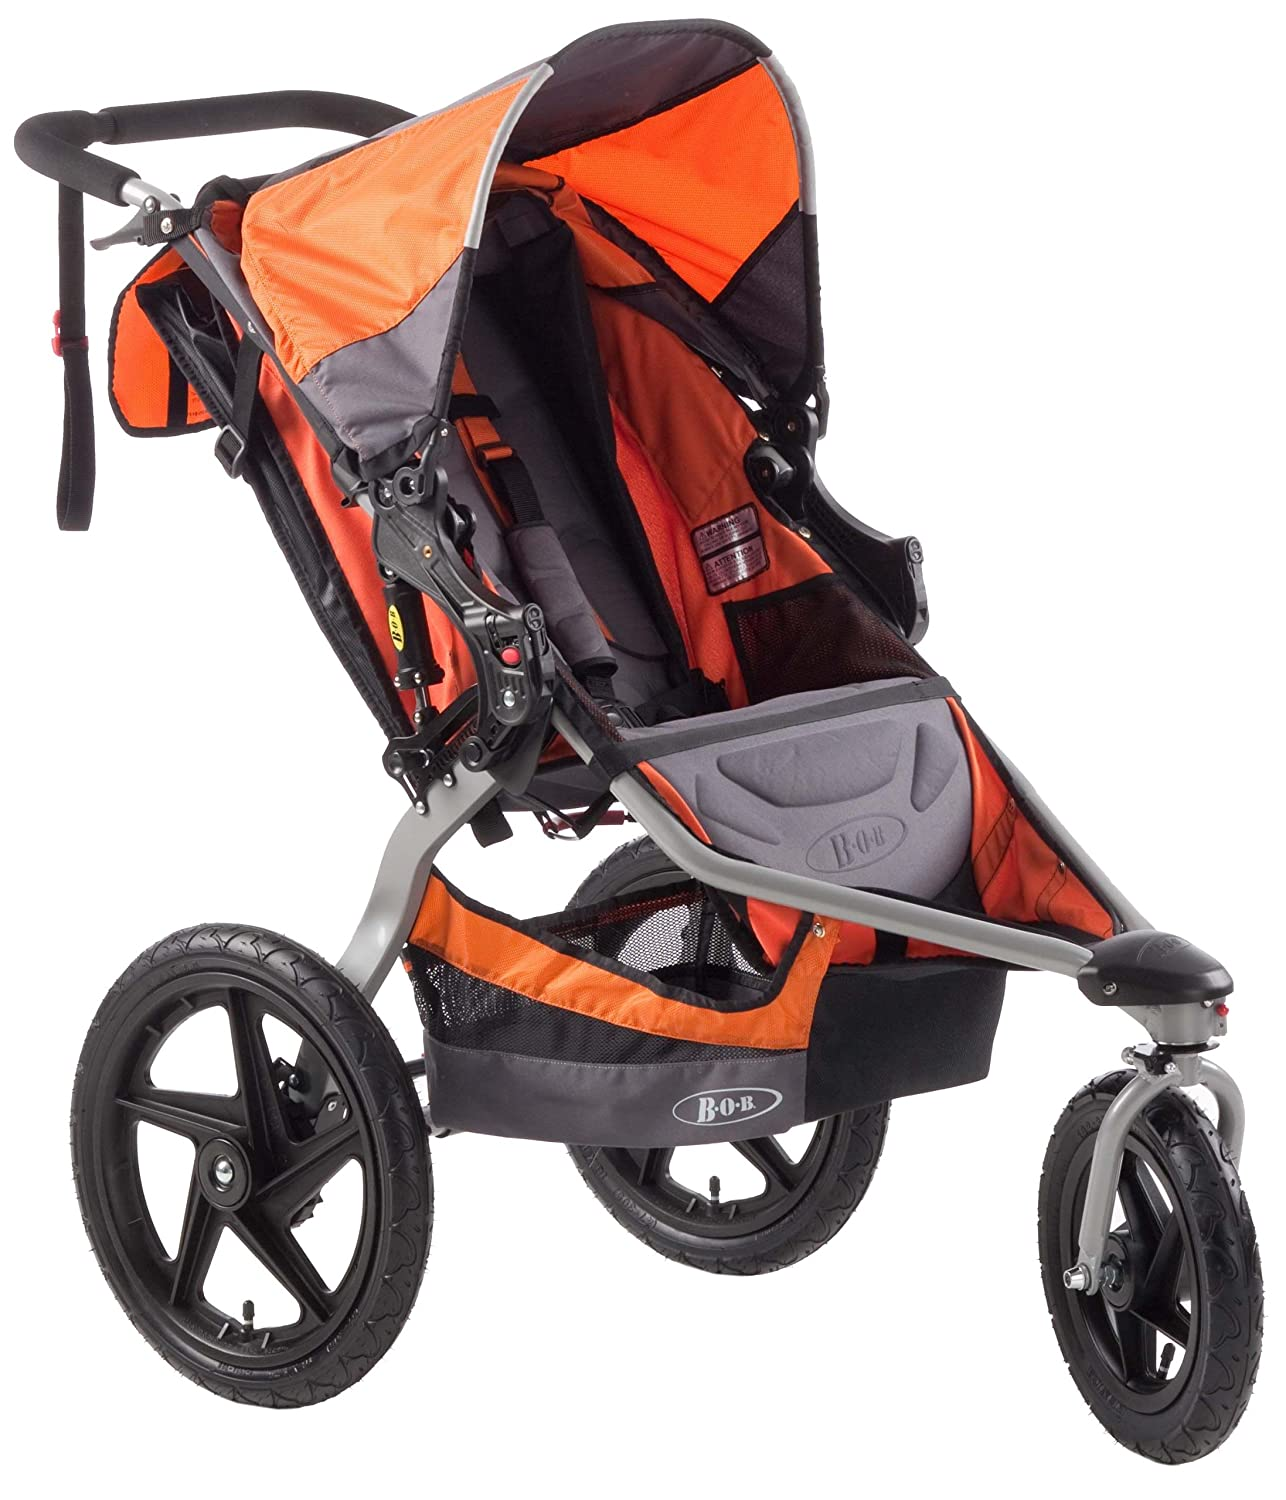 Amazon.com : BOB Revolution SE Single Stroller, Orange : Jogging ...